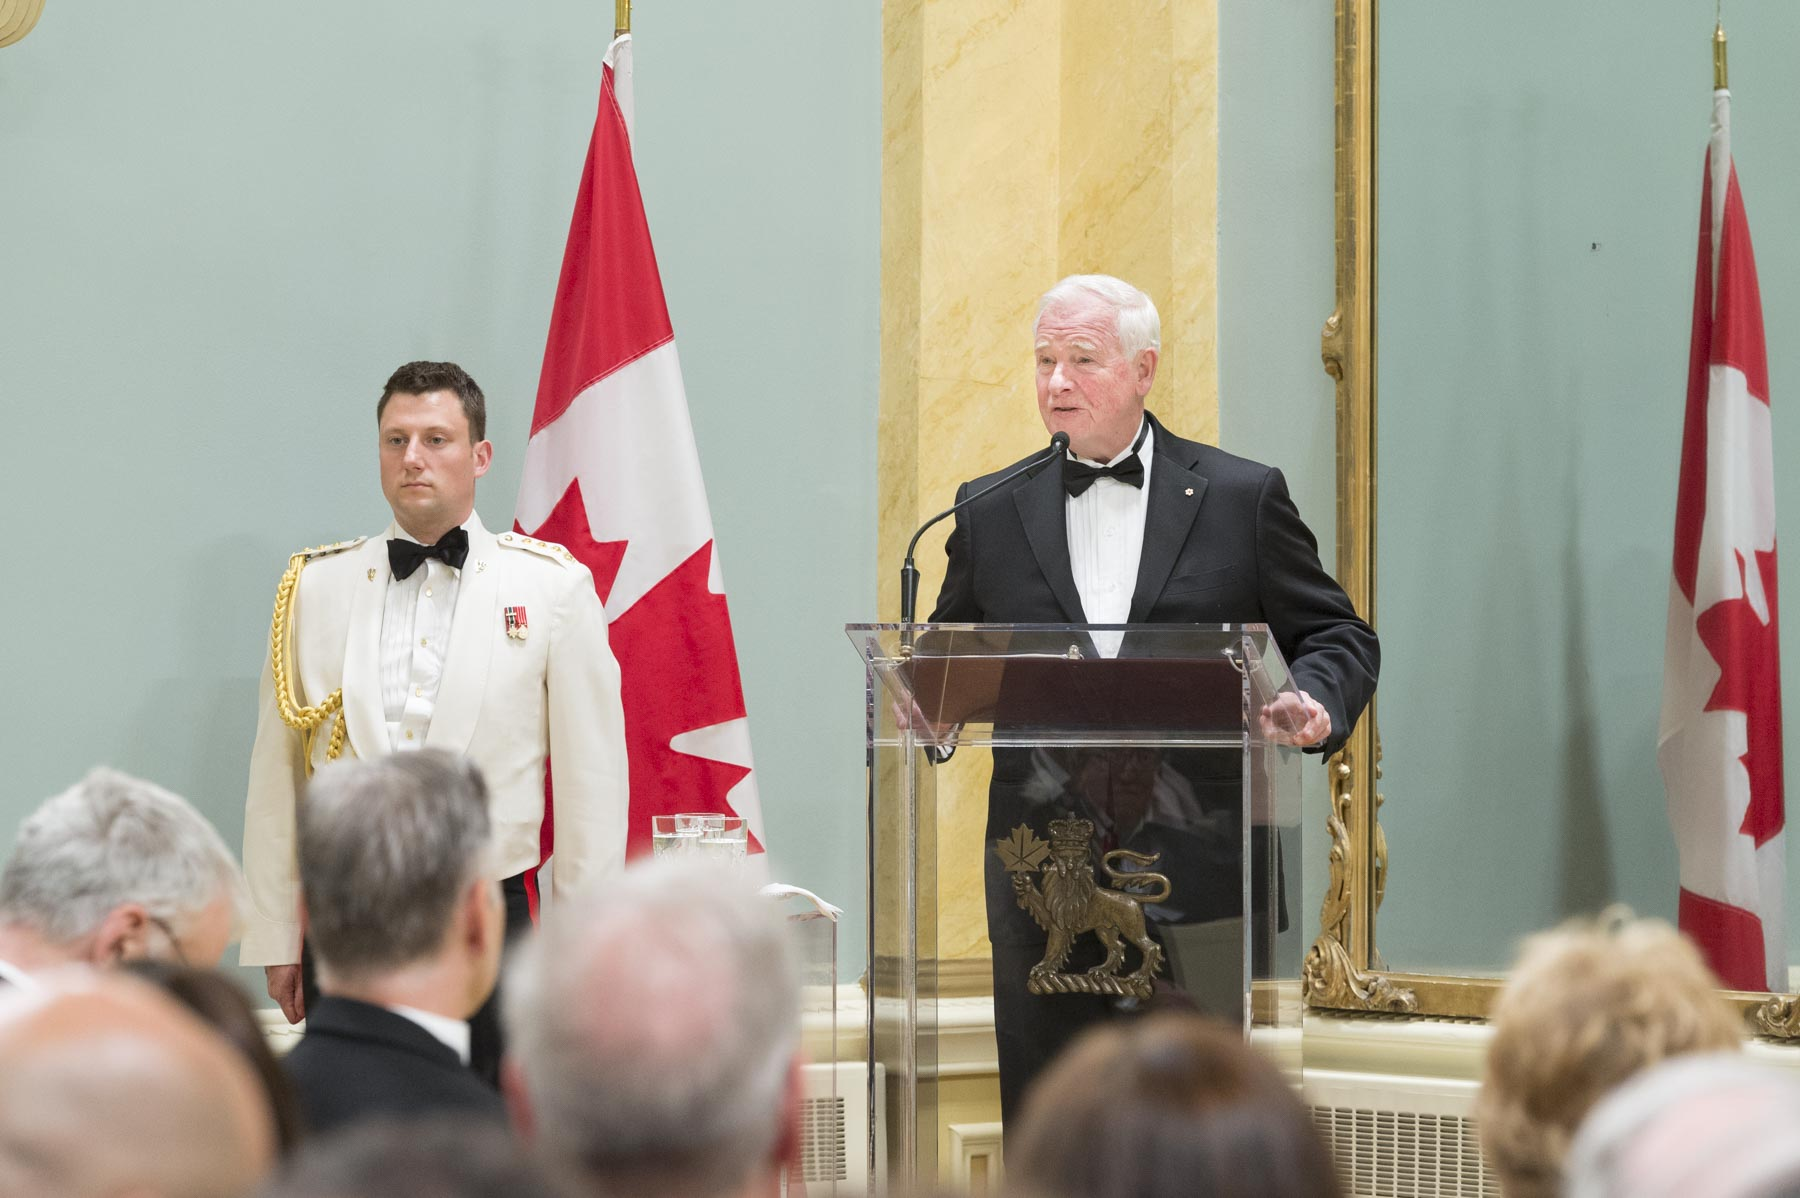 """The ground-breaking contributions that you and your research teams have made are so valuable, impressive and innovative. Together, you're addressing important issues in indigenous law, biology, ethics, genomics, and HIV/AIDS care and treatment,"" said the Governor General."